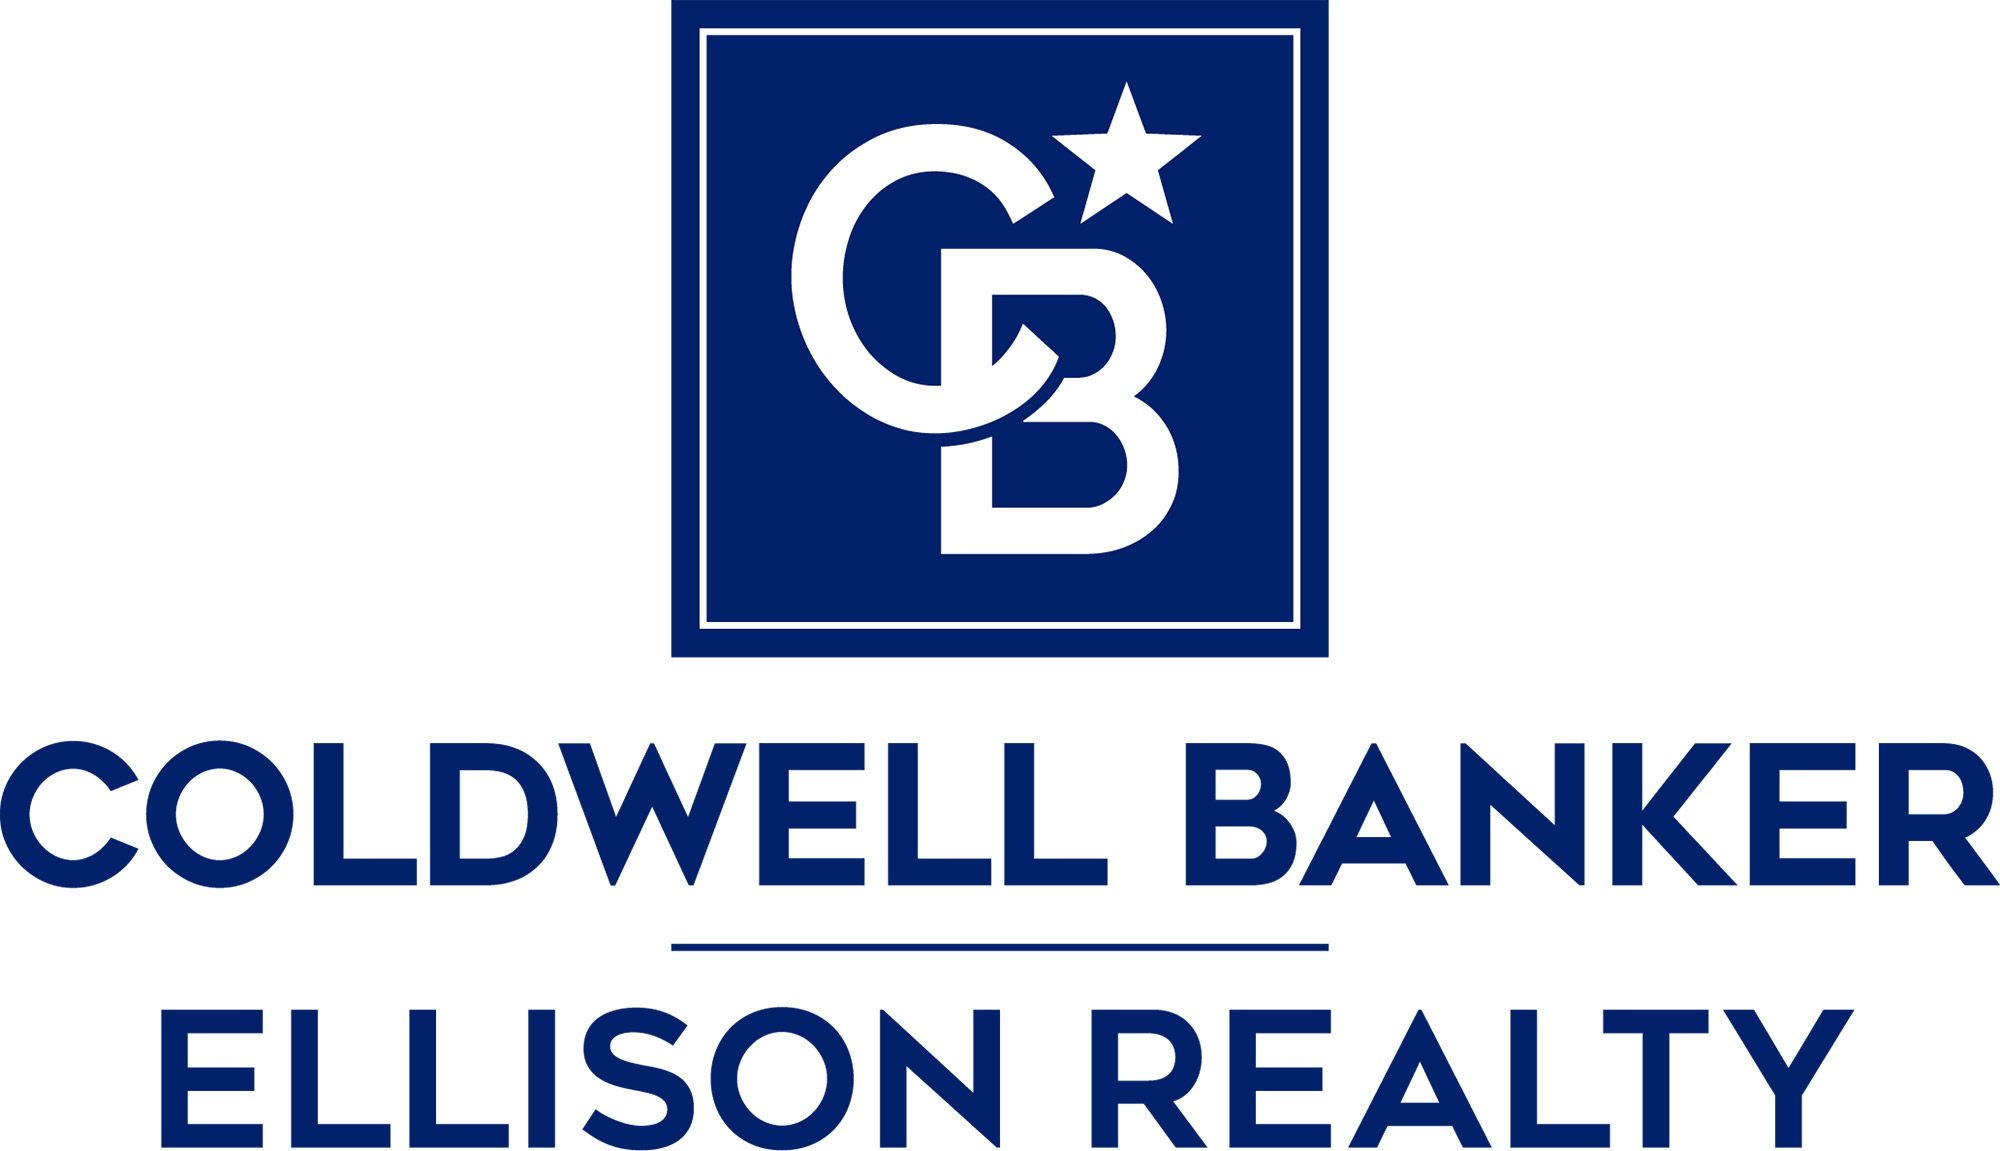 Jennifer Fudge - Coldwell Banker Ellison Realty Logo